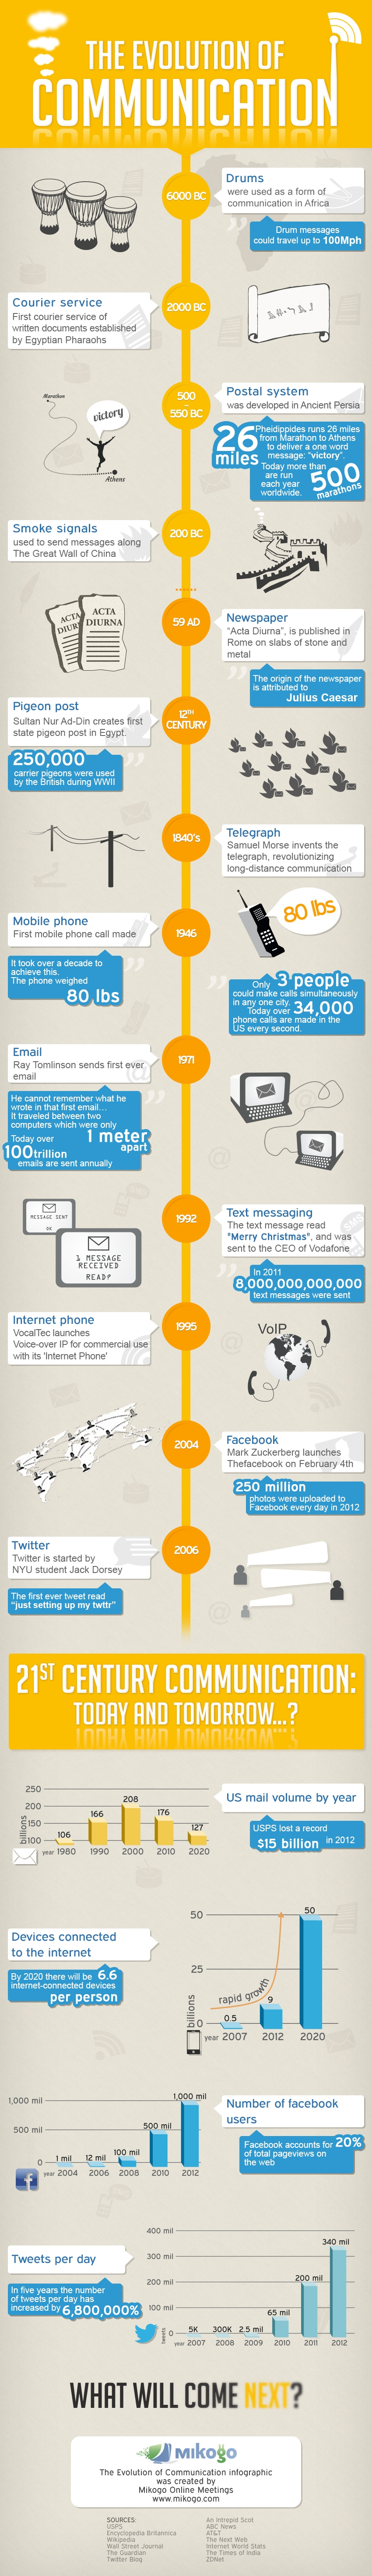 Evolution-of-communication-infographic